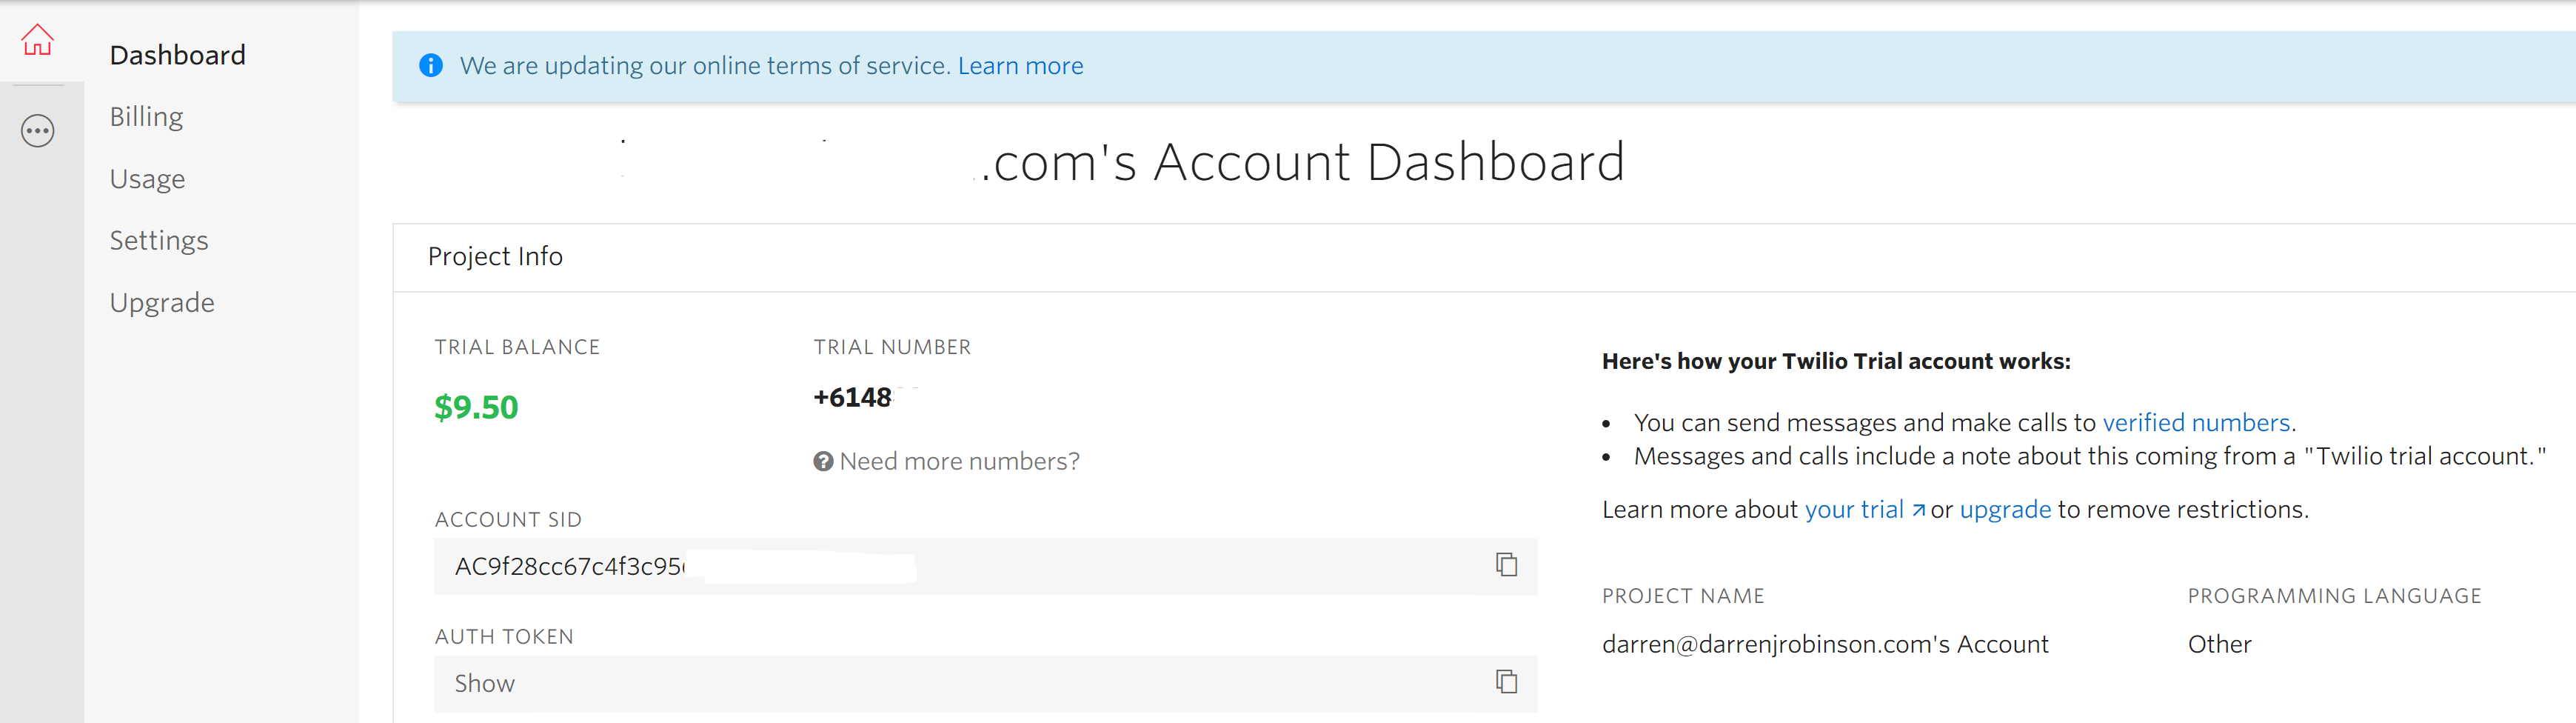 Trial Account Dashboard.PNG